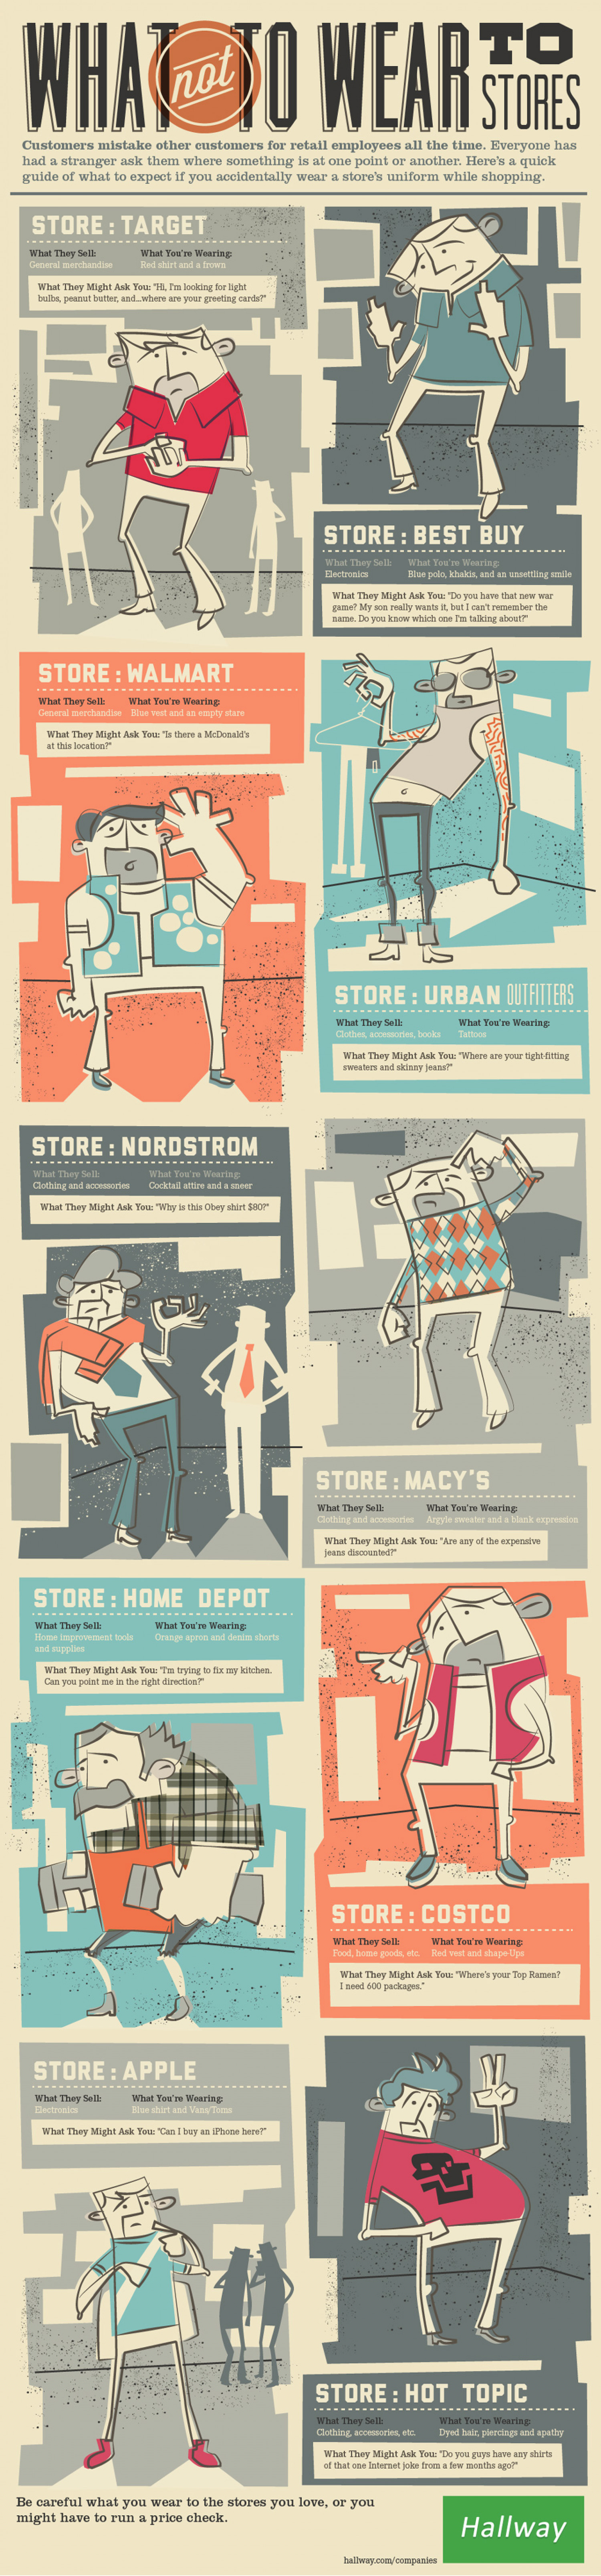 What Not to Wear to Stores Infographic